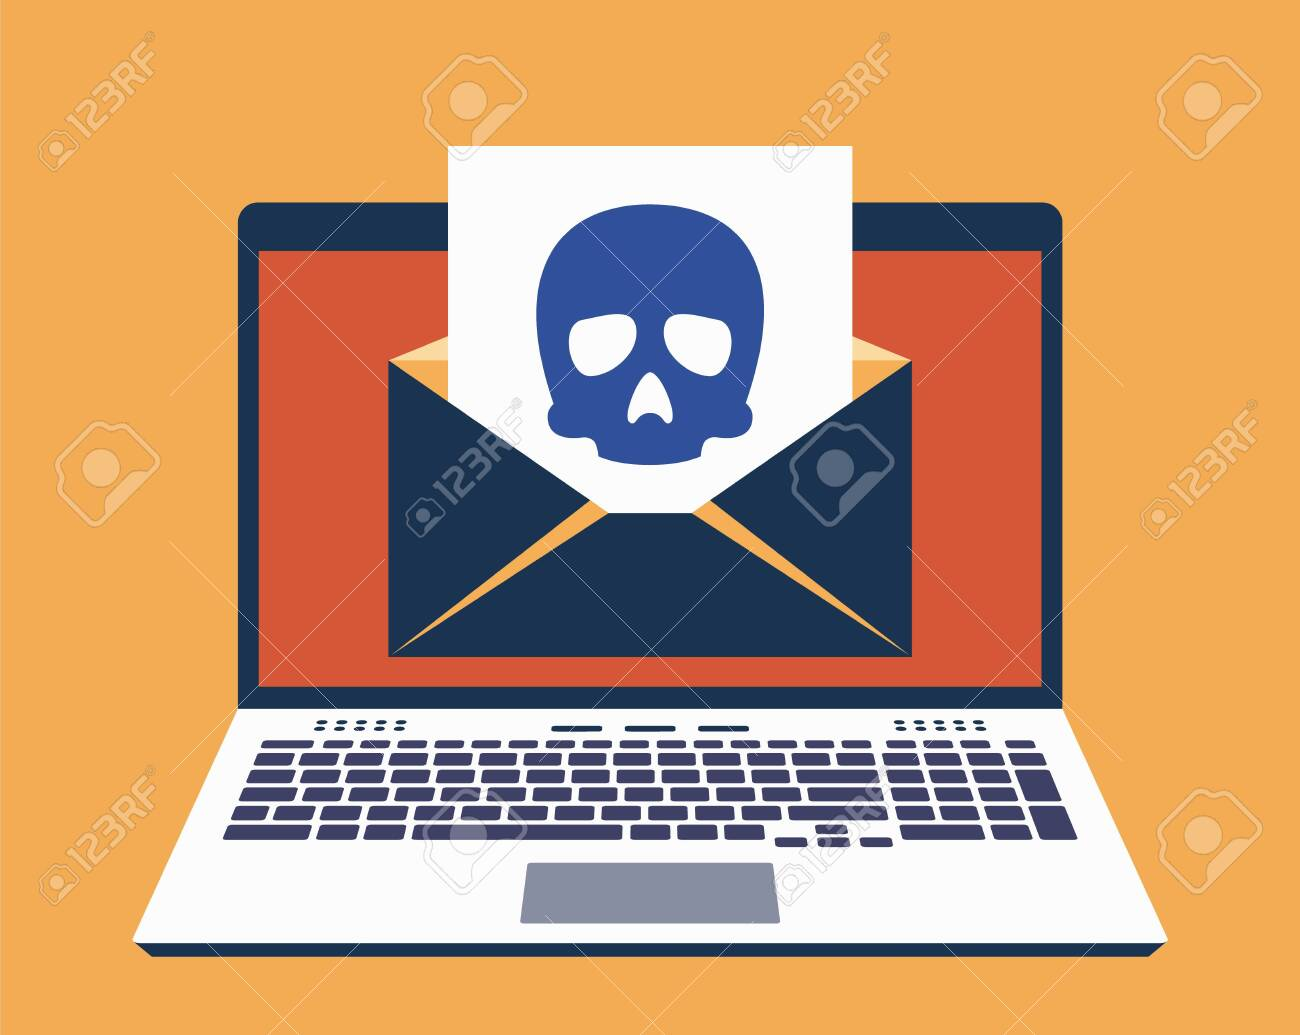 Laptop, E-Mail on Its Screen and Paper Leaf With Icon of Skull on It. Computer Virus Infected Mail Concept. Vector Illustration in Flat Design Style - 150609035